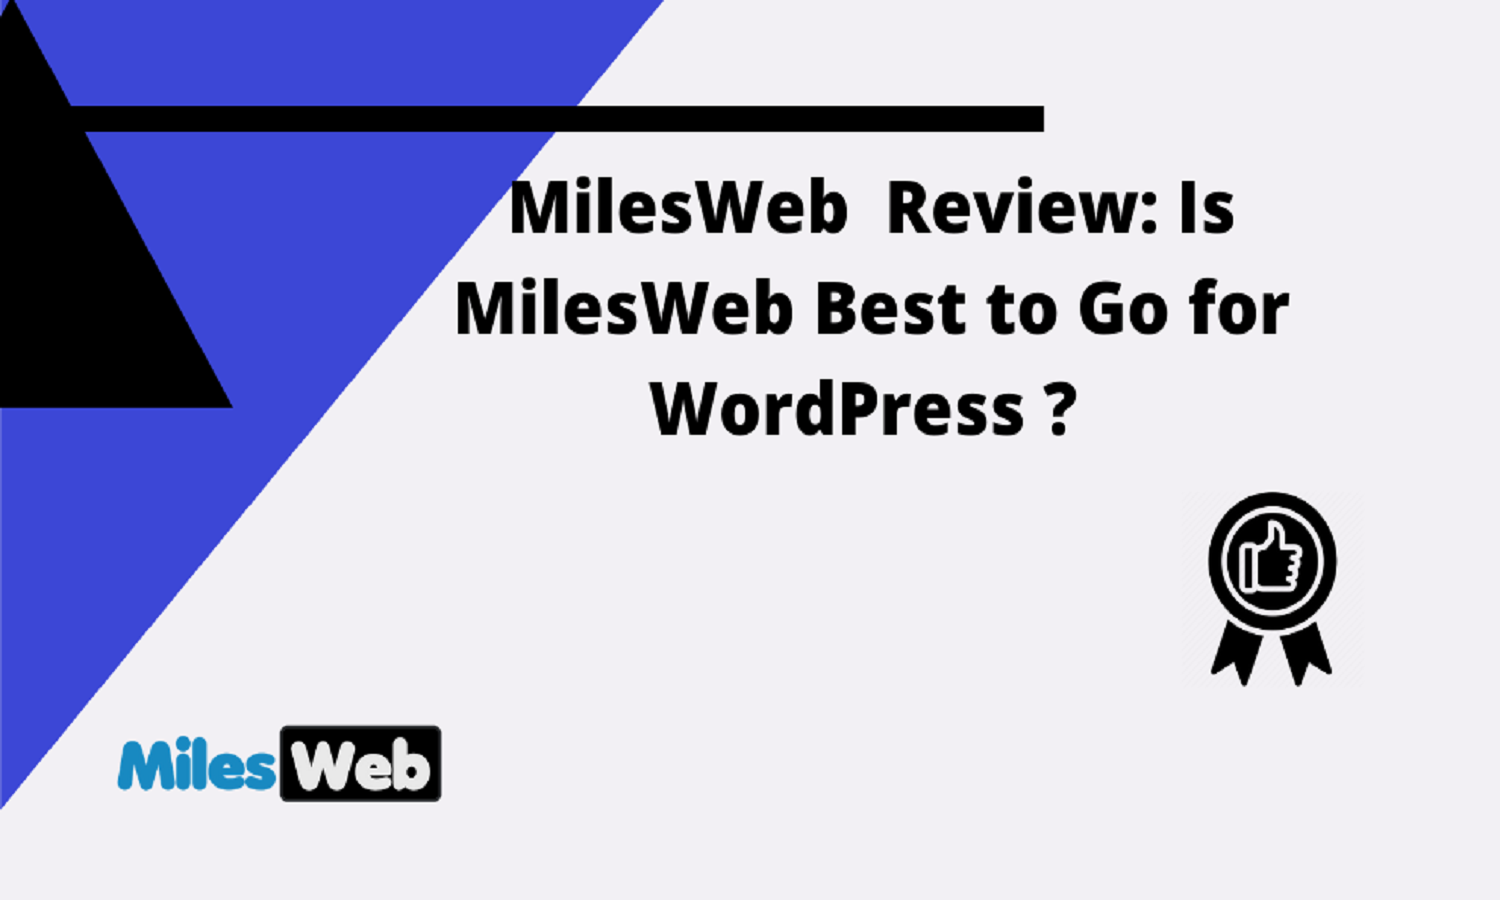 MilesWeb Review: Is MilesWeb Best to Go for WordPress?